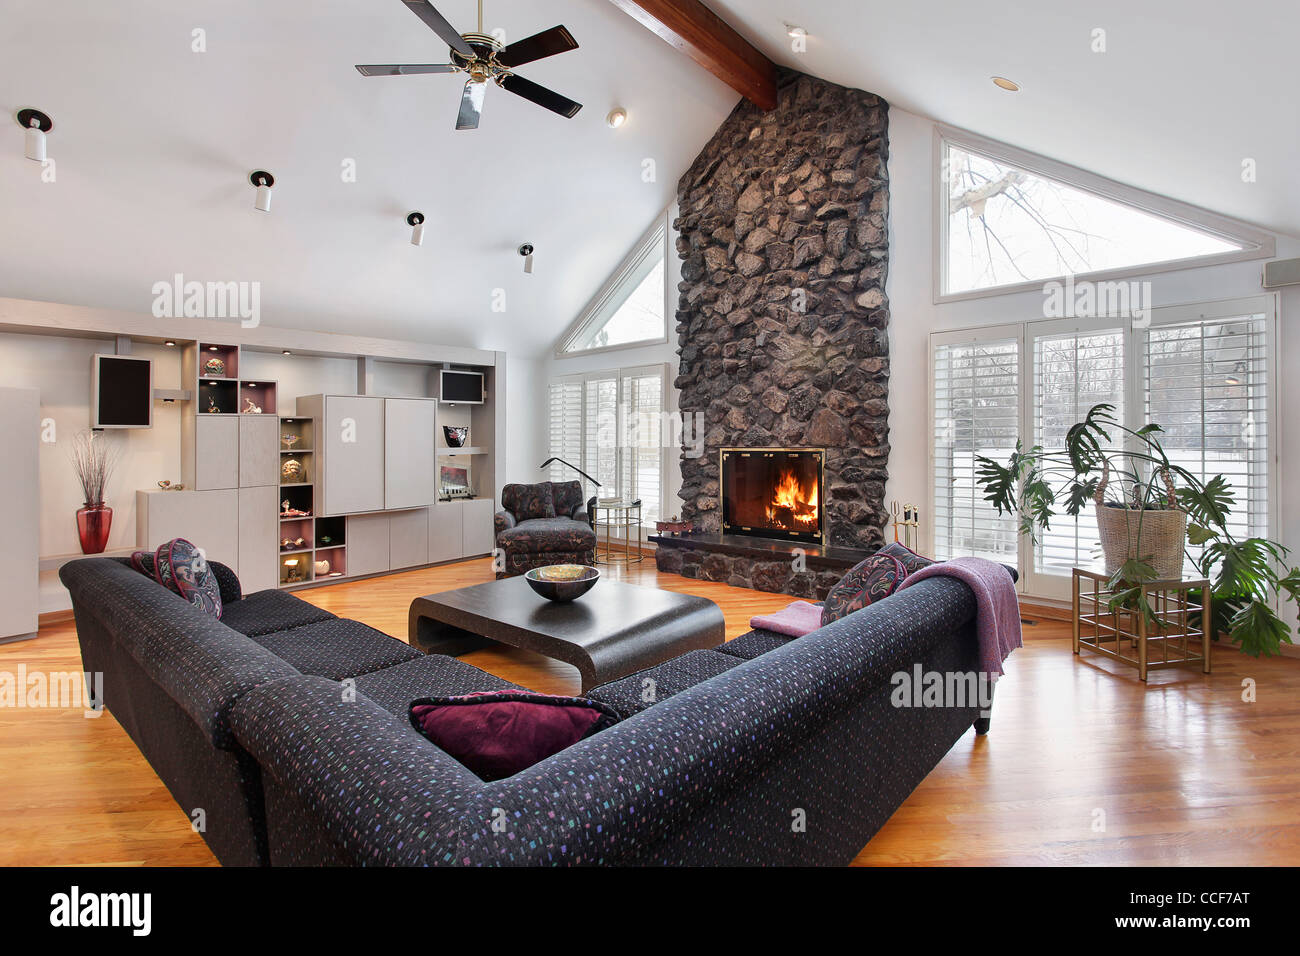 Fireplace Beams Family Room With Two Story Stone Fireplace And Wood Beams Stock